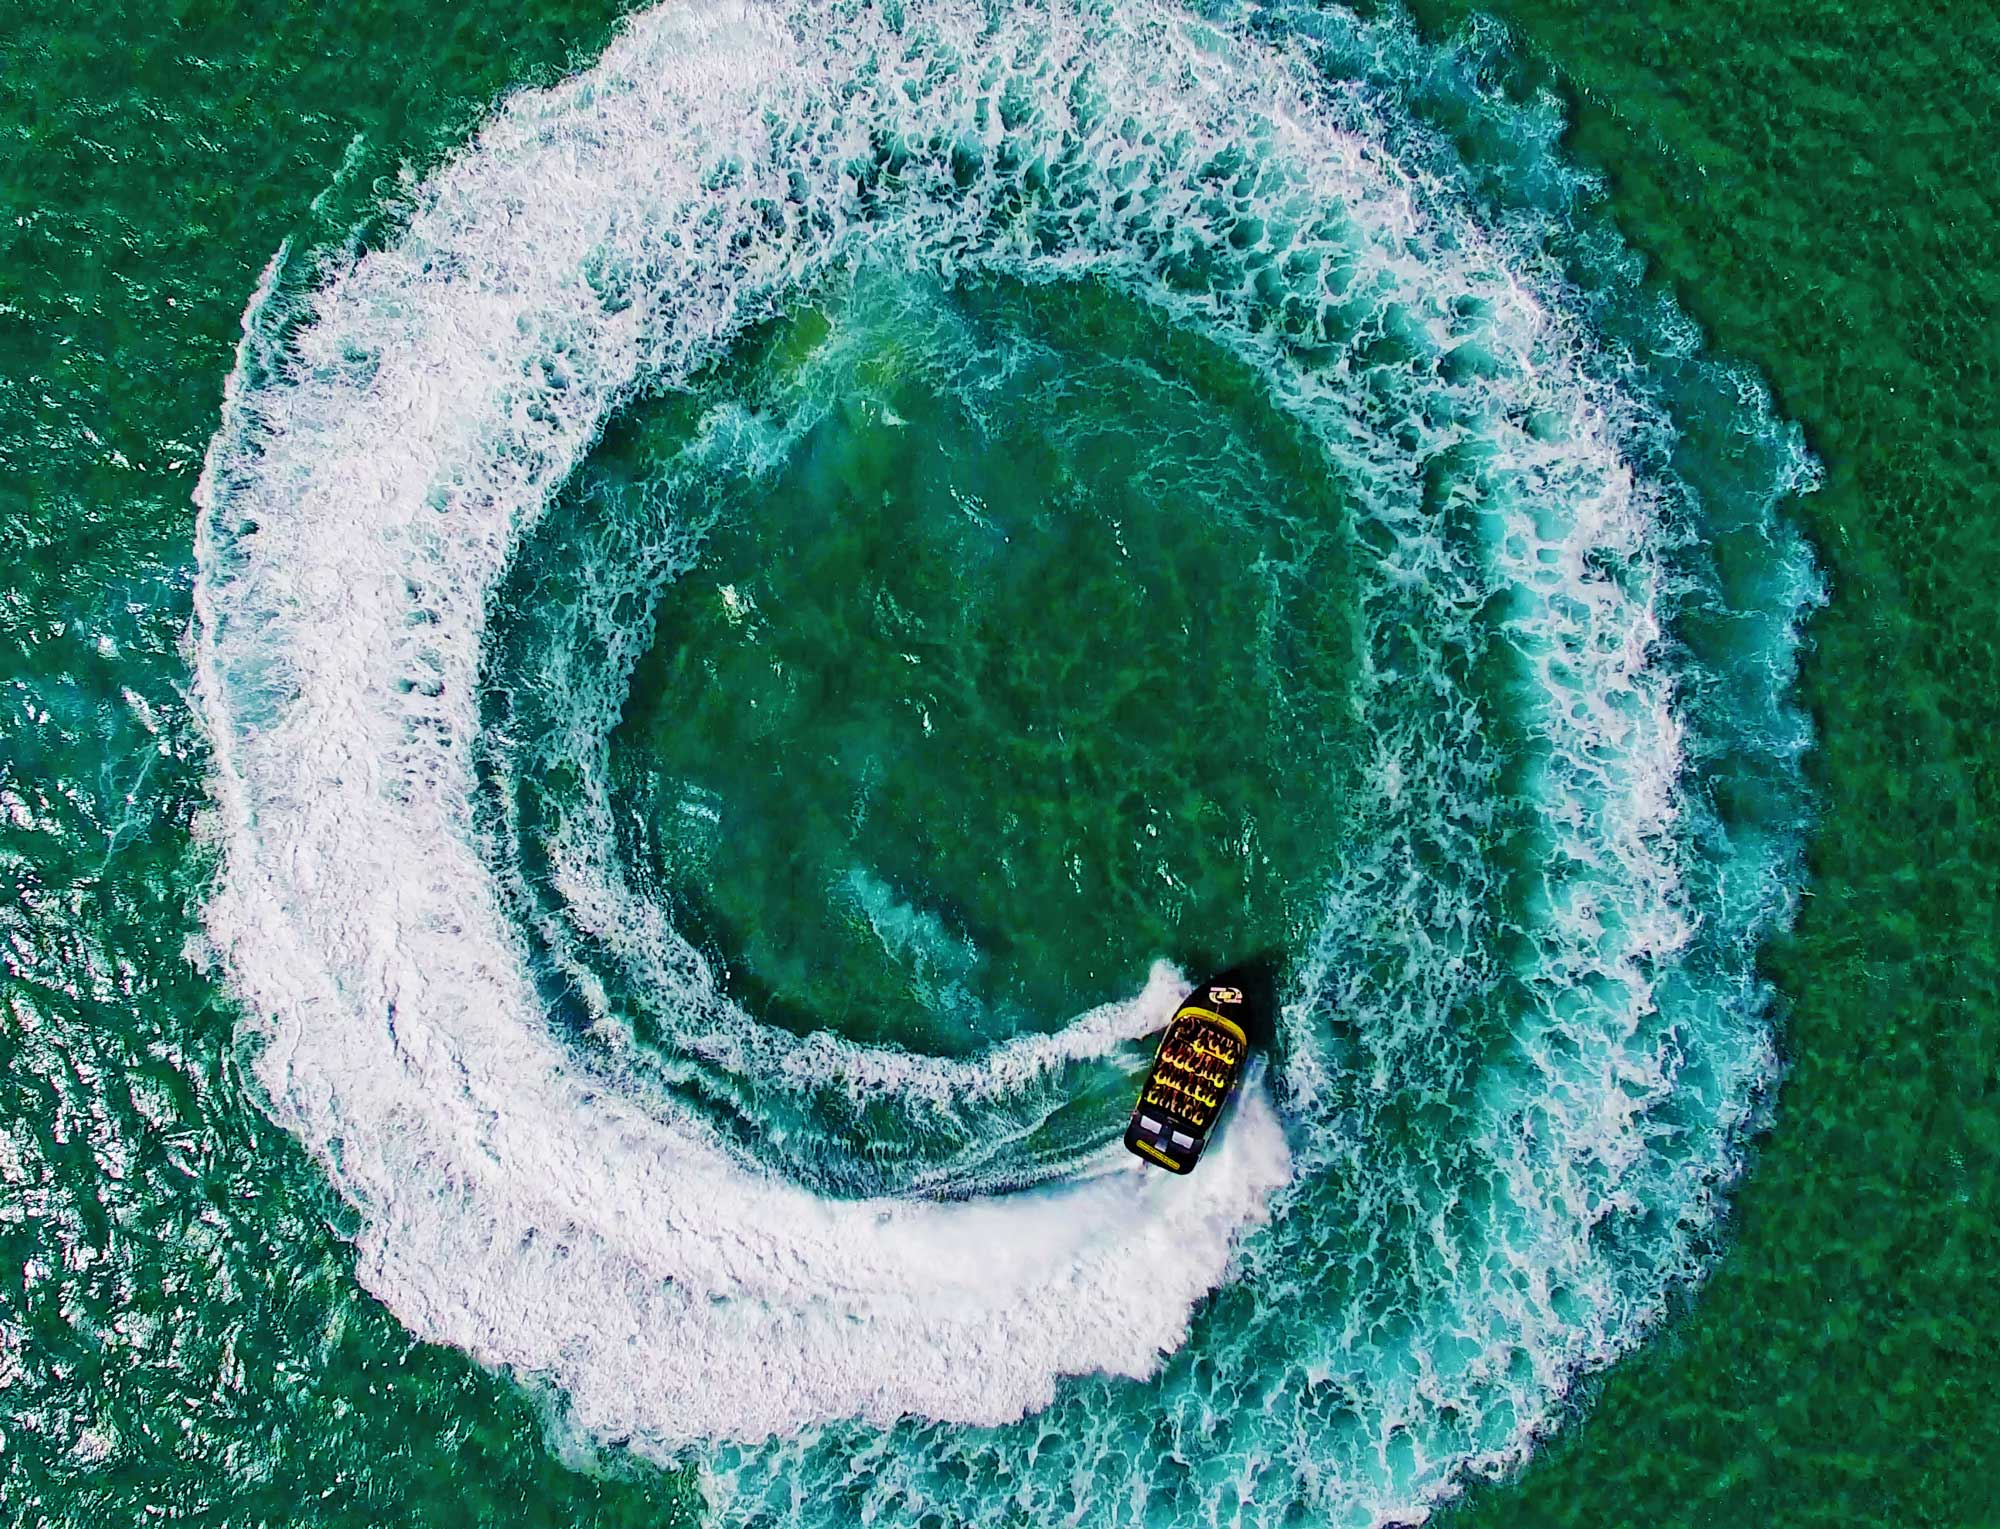 Jet boat doing donuts in the ocean